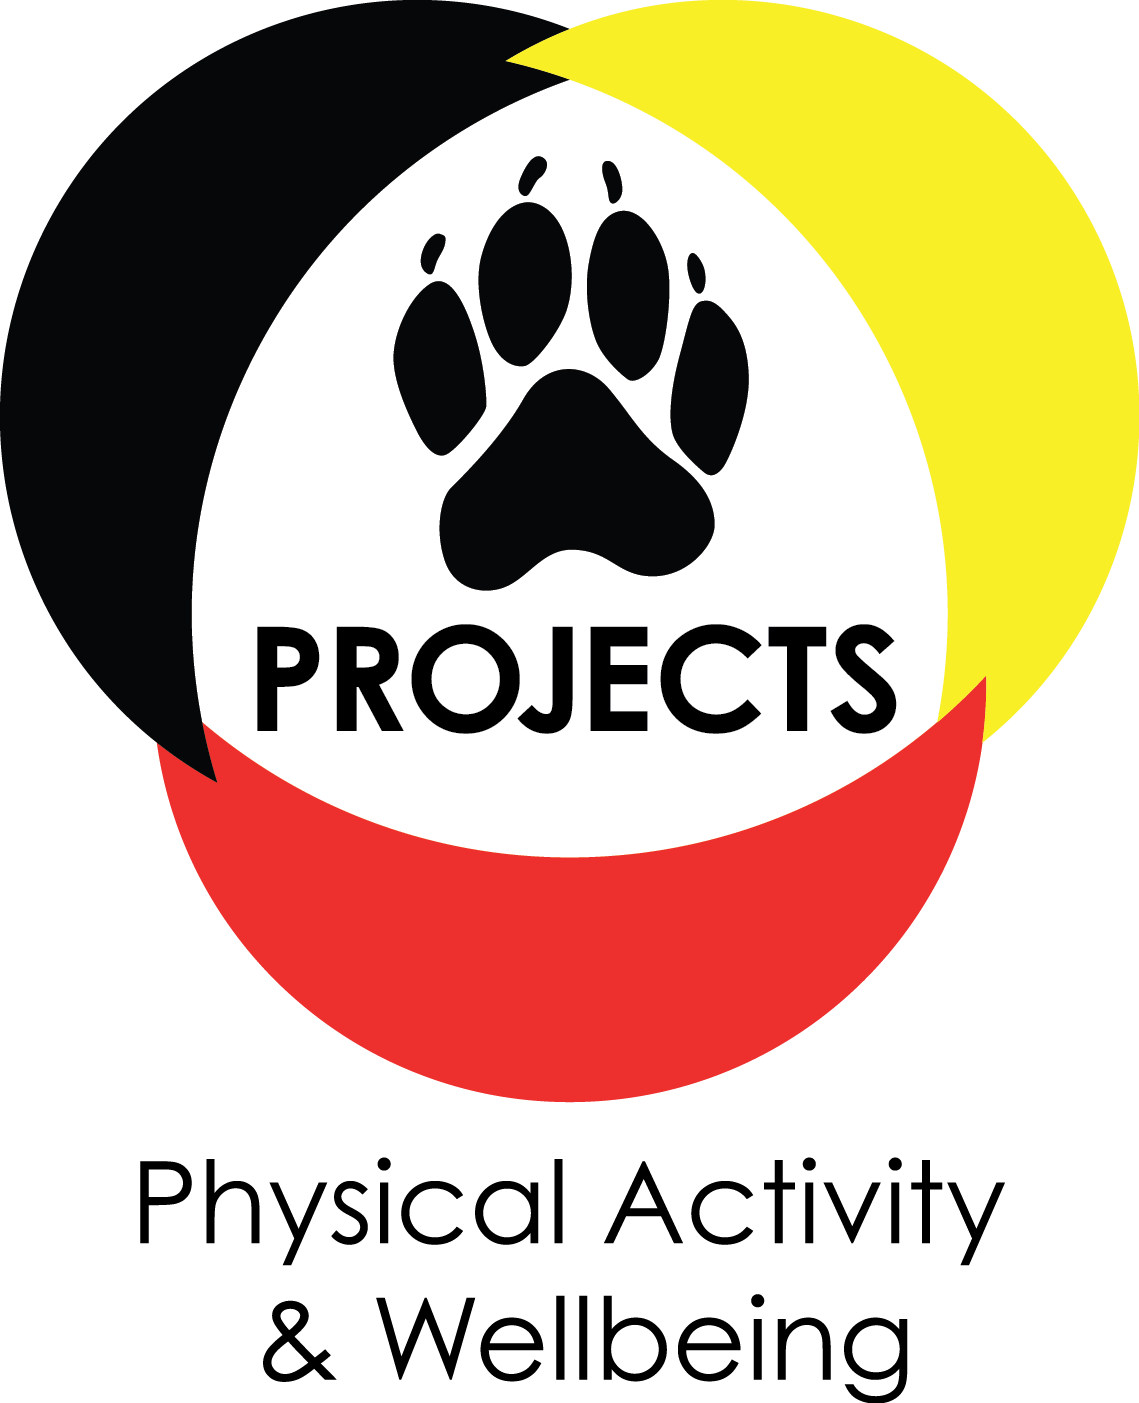 PAW PROJECTS